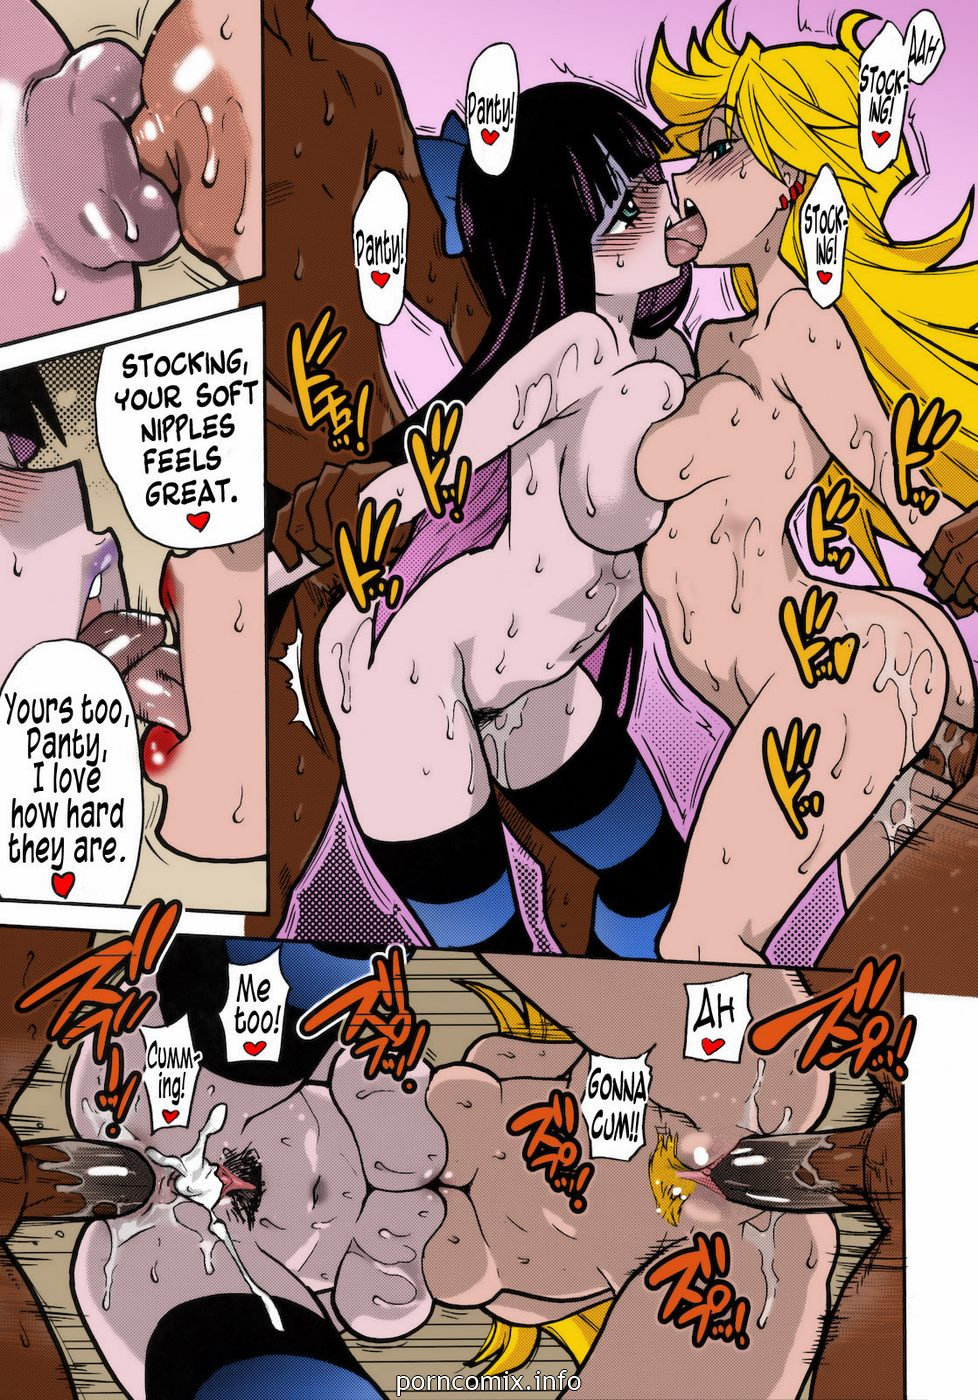 Panty- Hentai Interracial - part 2